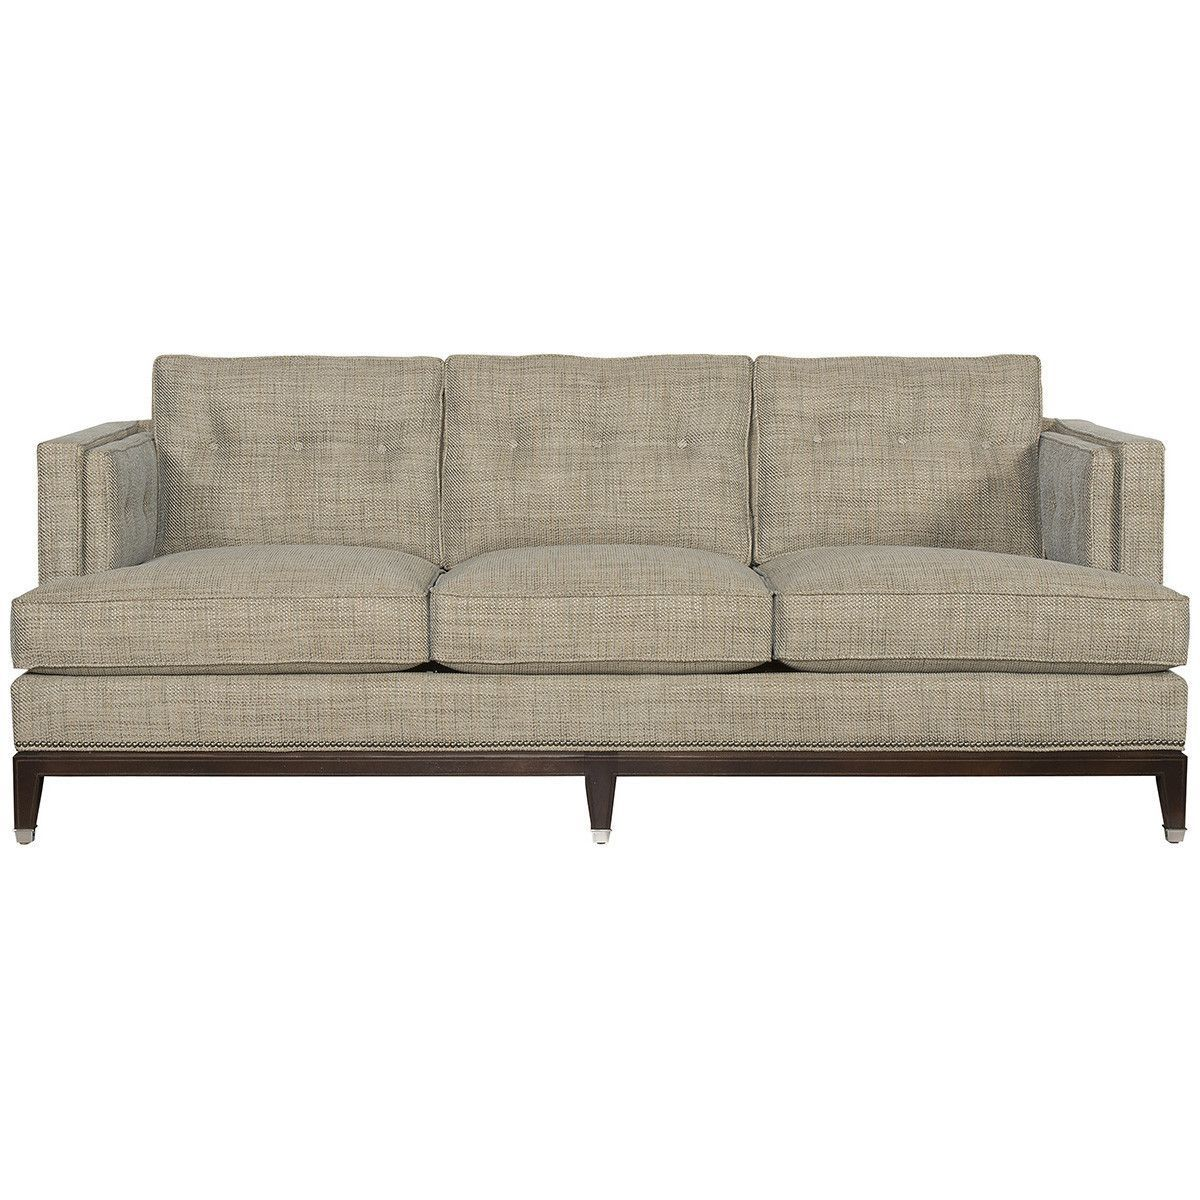 Vanguard Furniture Tally Cloud Whitaker Sofa